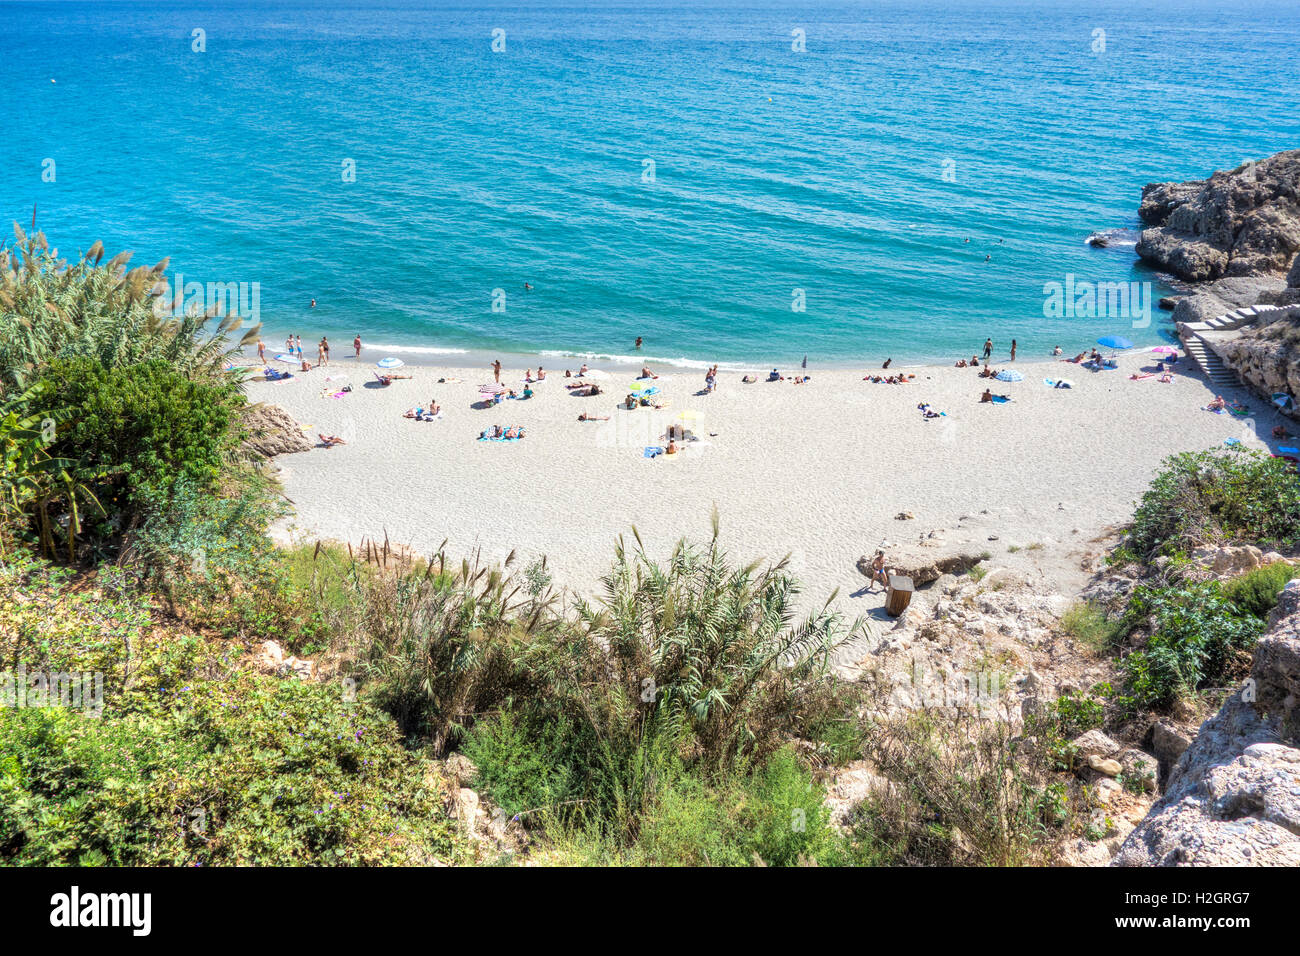 The small beach called Playa Carabeillo in Nerja on the Costa Del Sol Spain - Stock Image